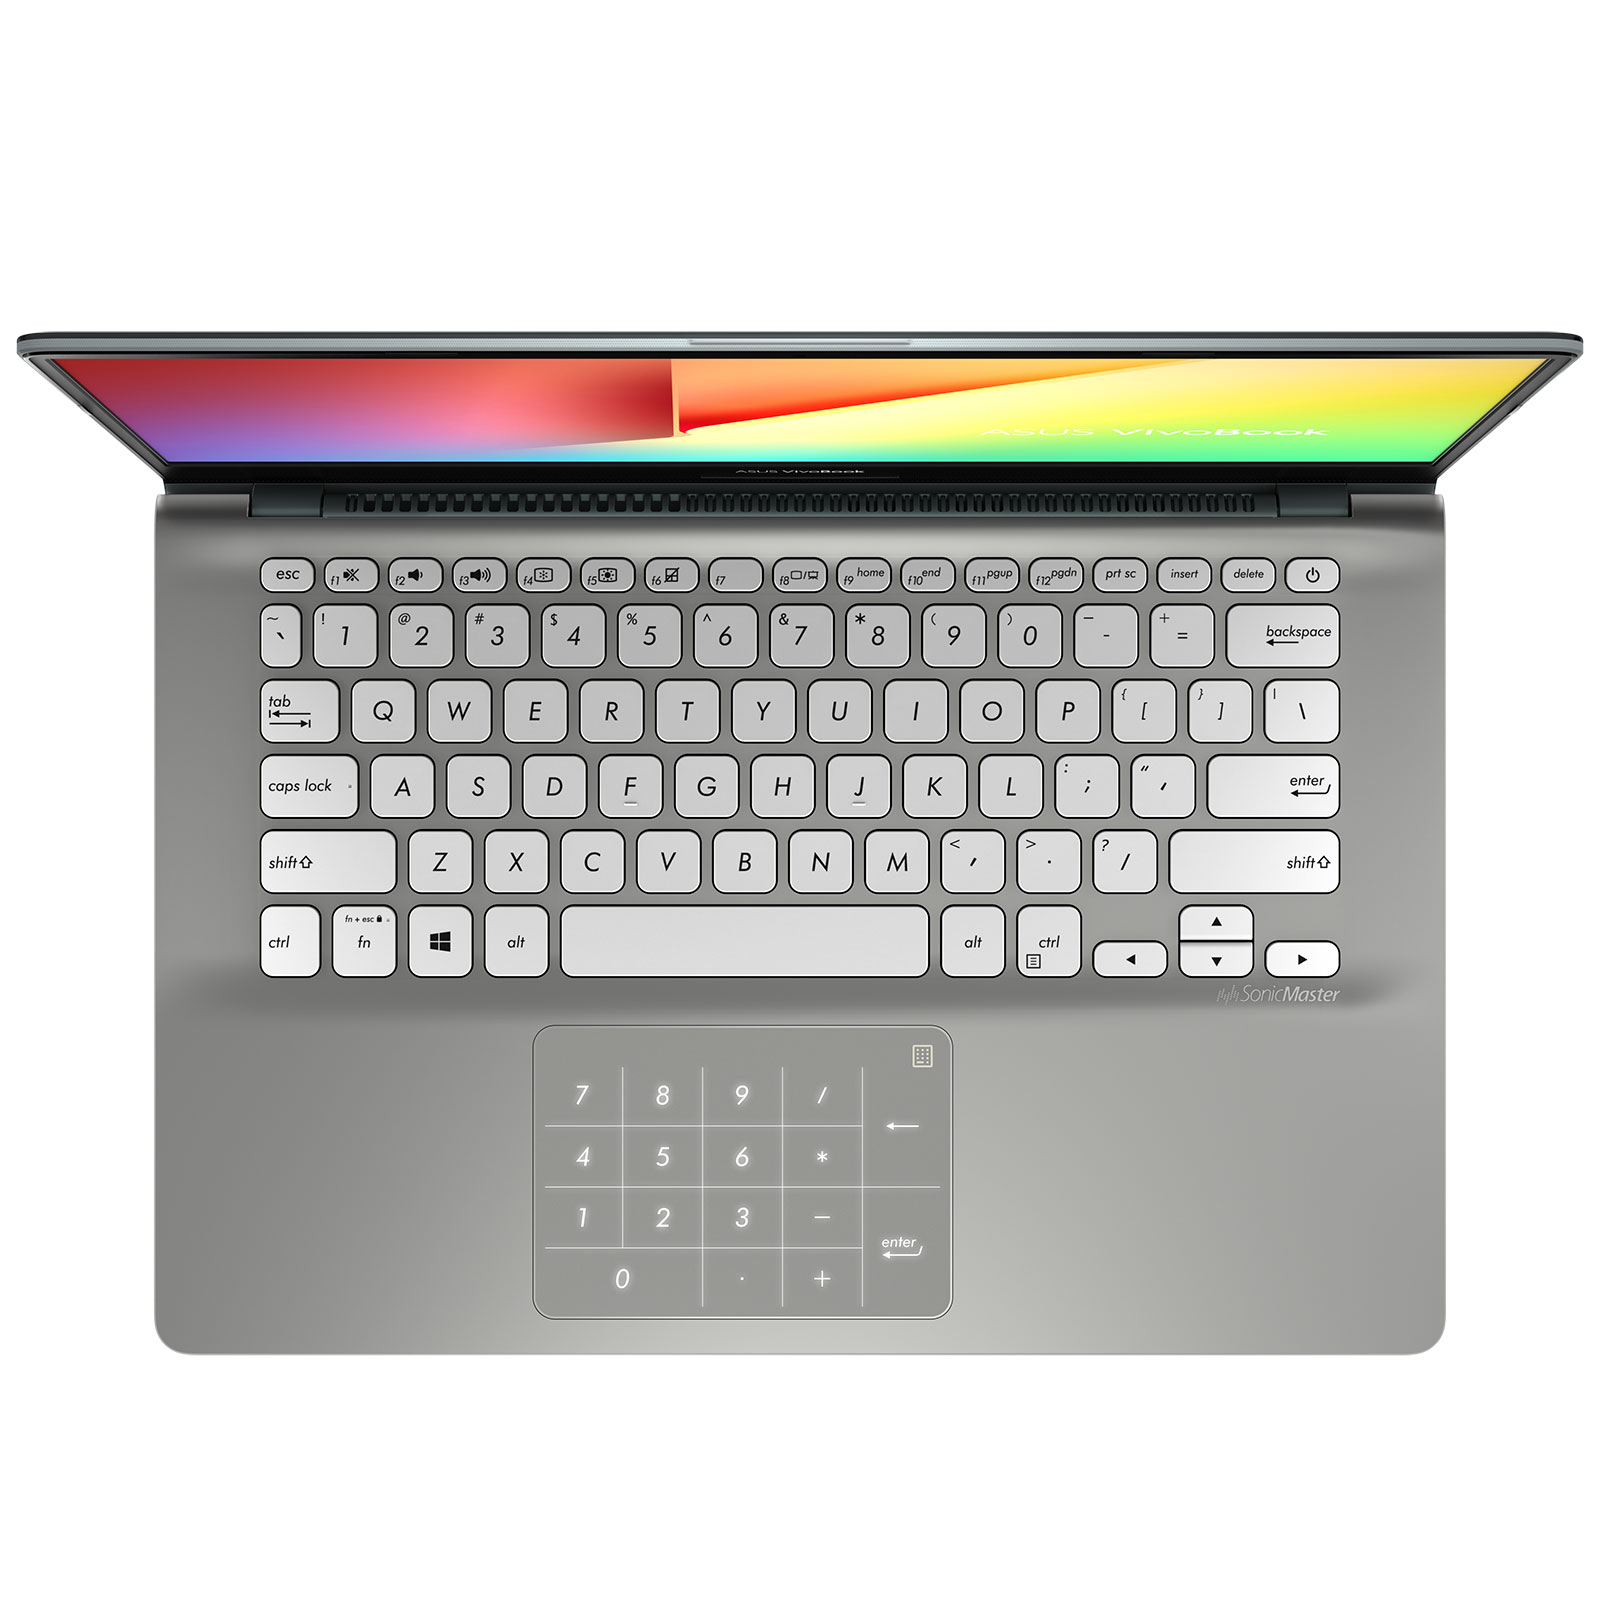 "PC portable ASUS Vivobook S14 S430UAN-EB156T avec NumPad Intel Core i5-8250U 6 Go SSD 128 Go + HDD 1 To 14"" LED Full HD Wi-Fi AC/Bluetooth Webcam Windows 10 Famille 64 bits (garantie constructeur 2 ans)"